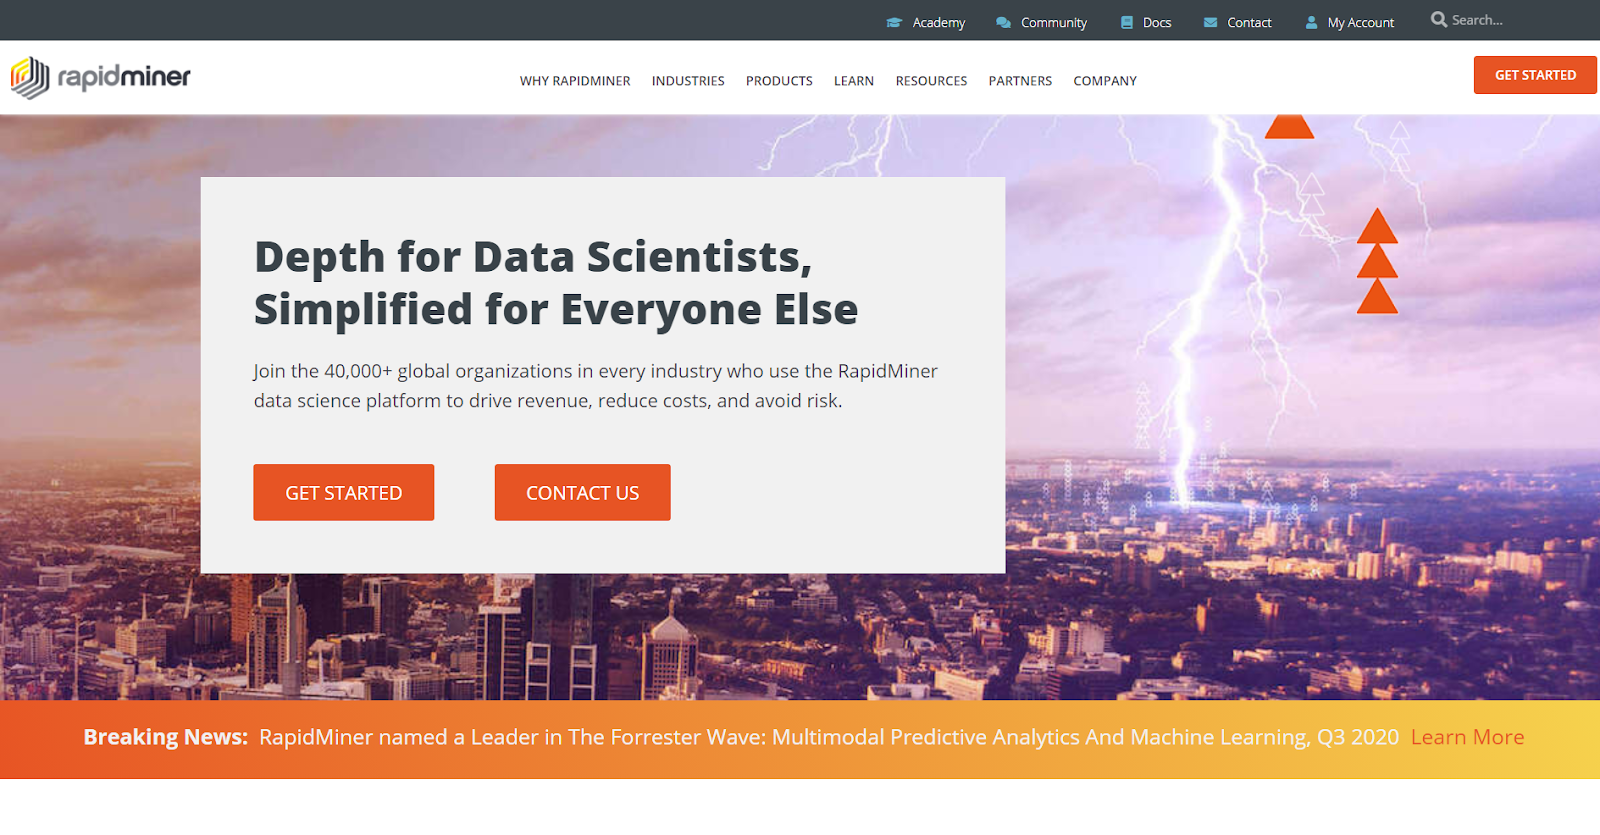 Rapidminer is one of the big data tools